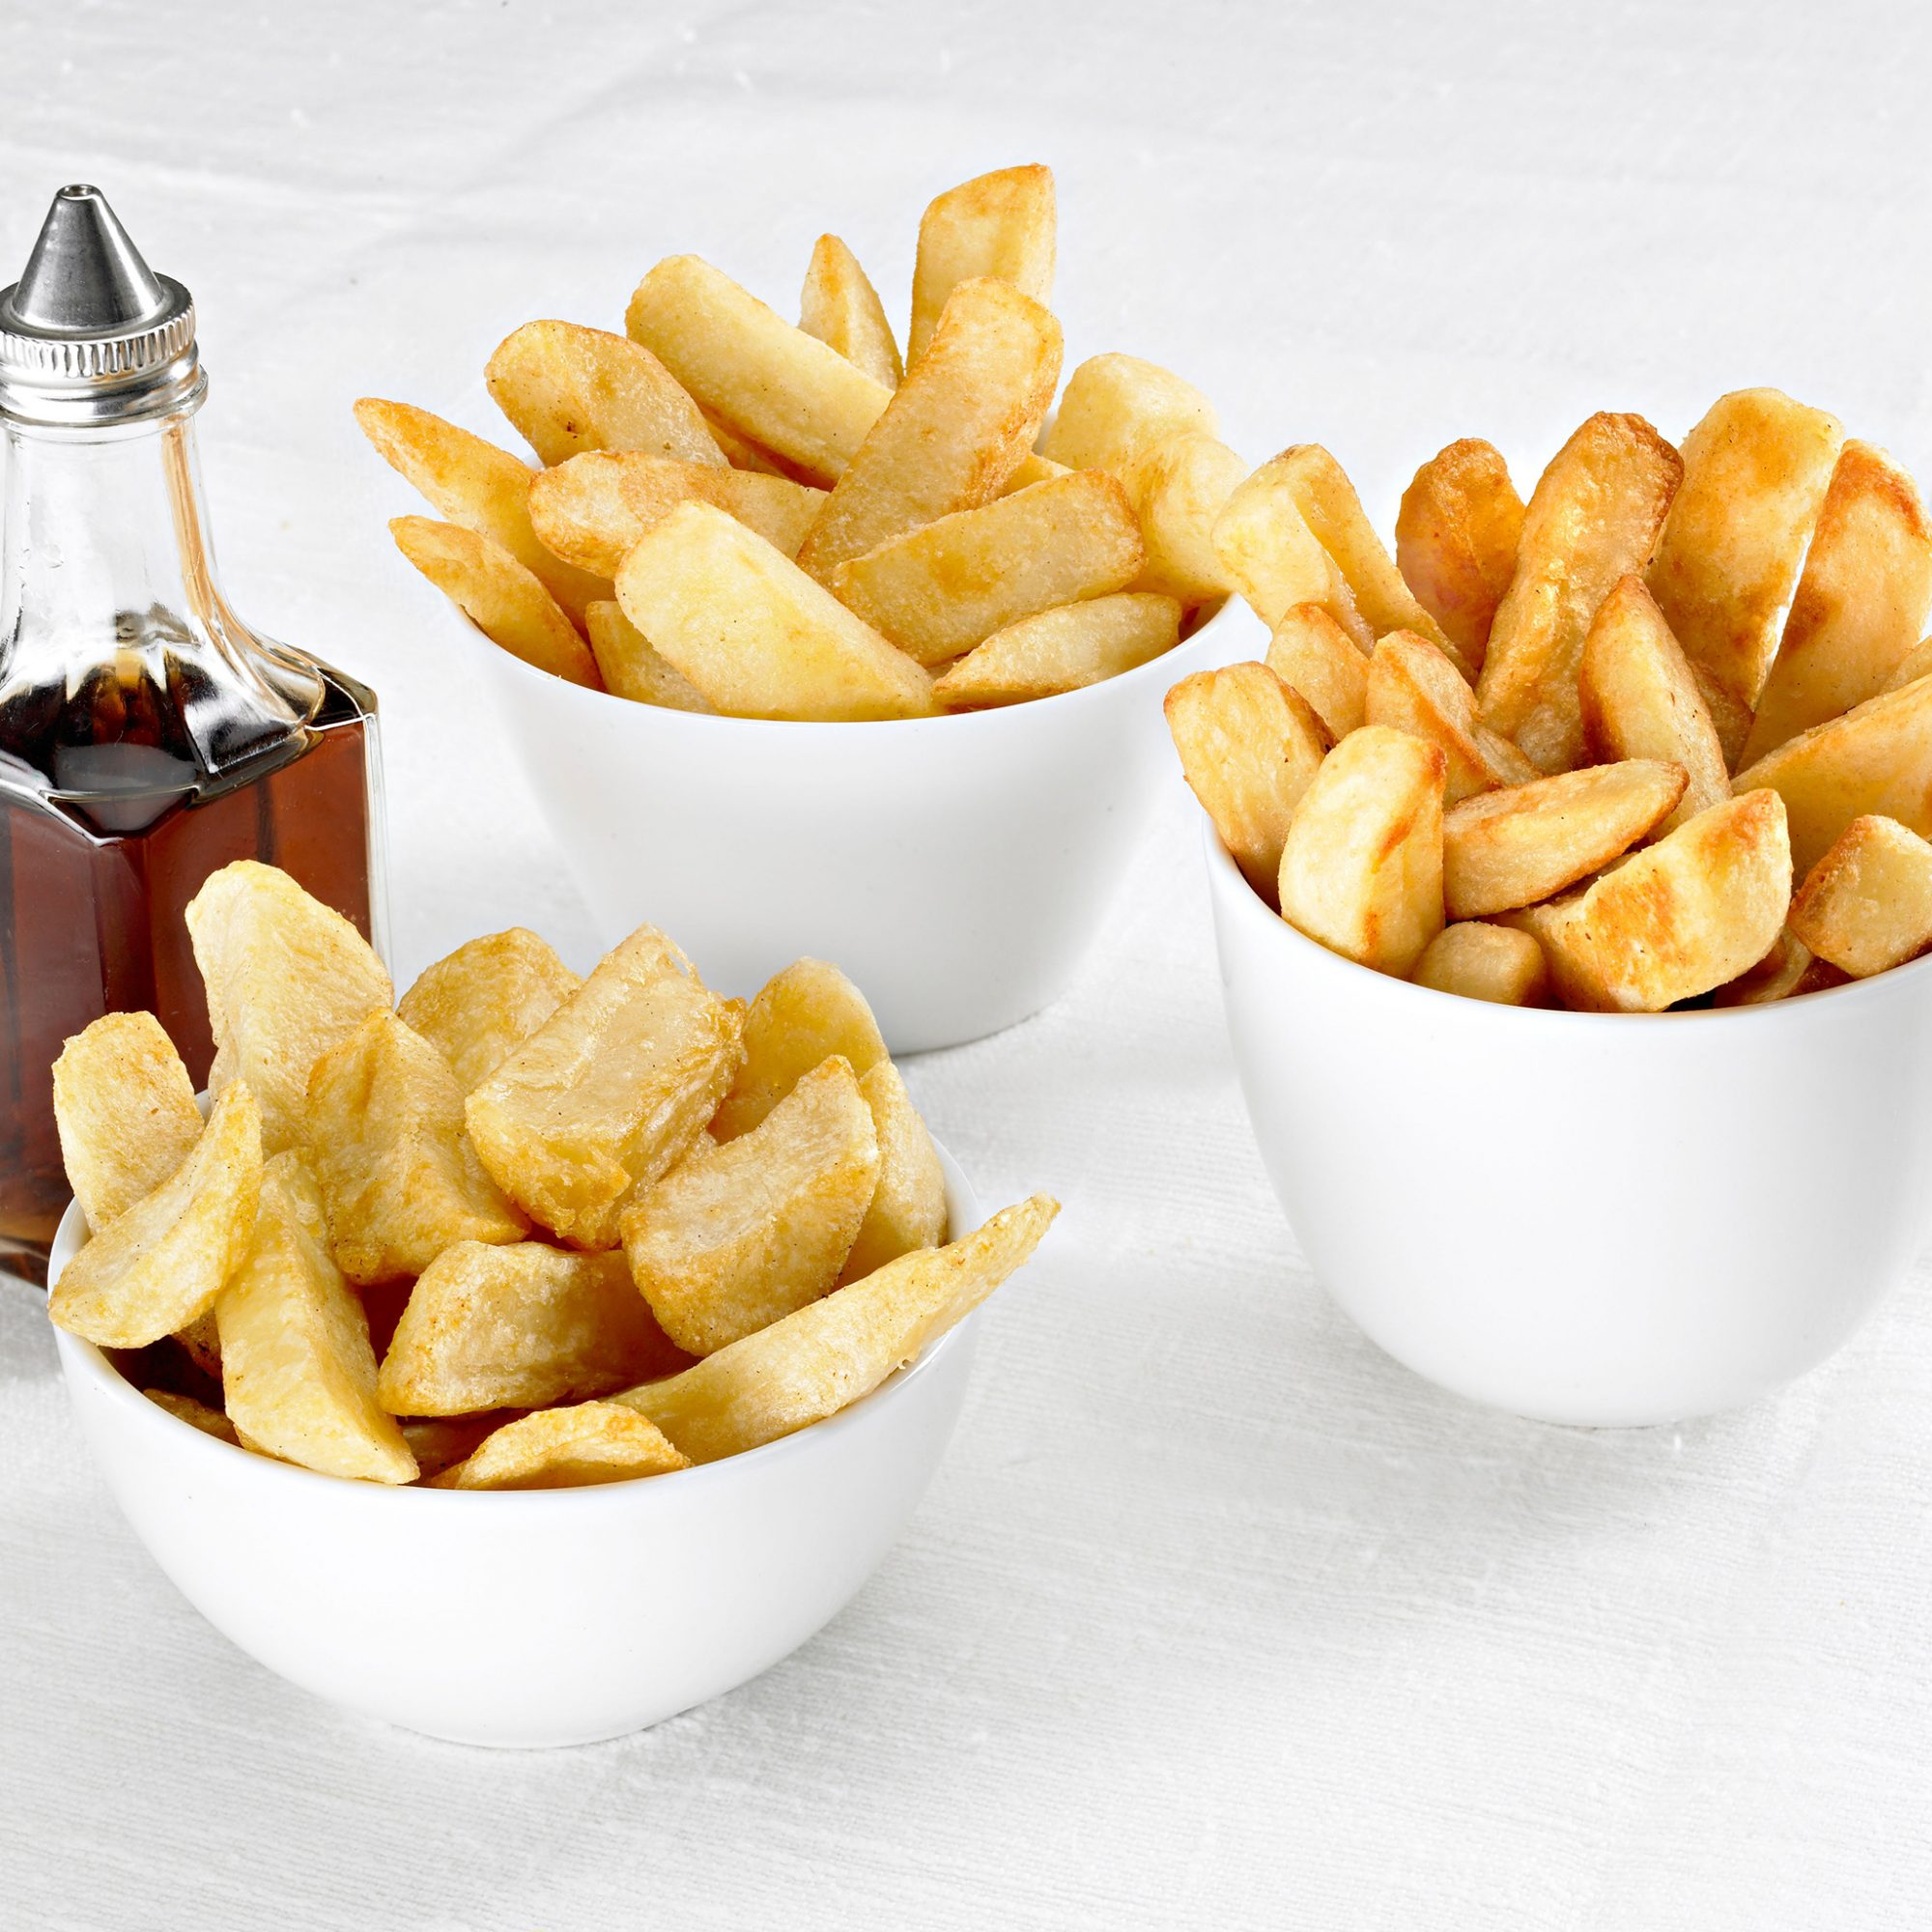 South Africa: Slap Chips